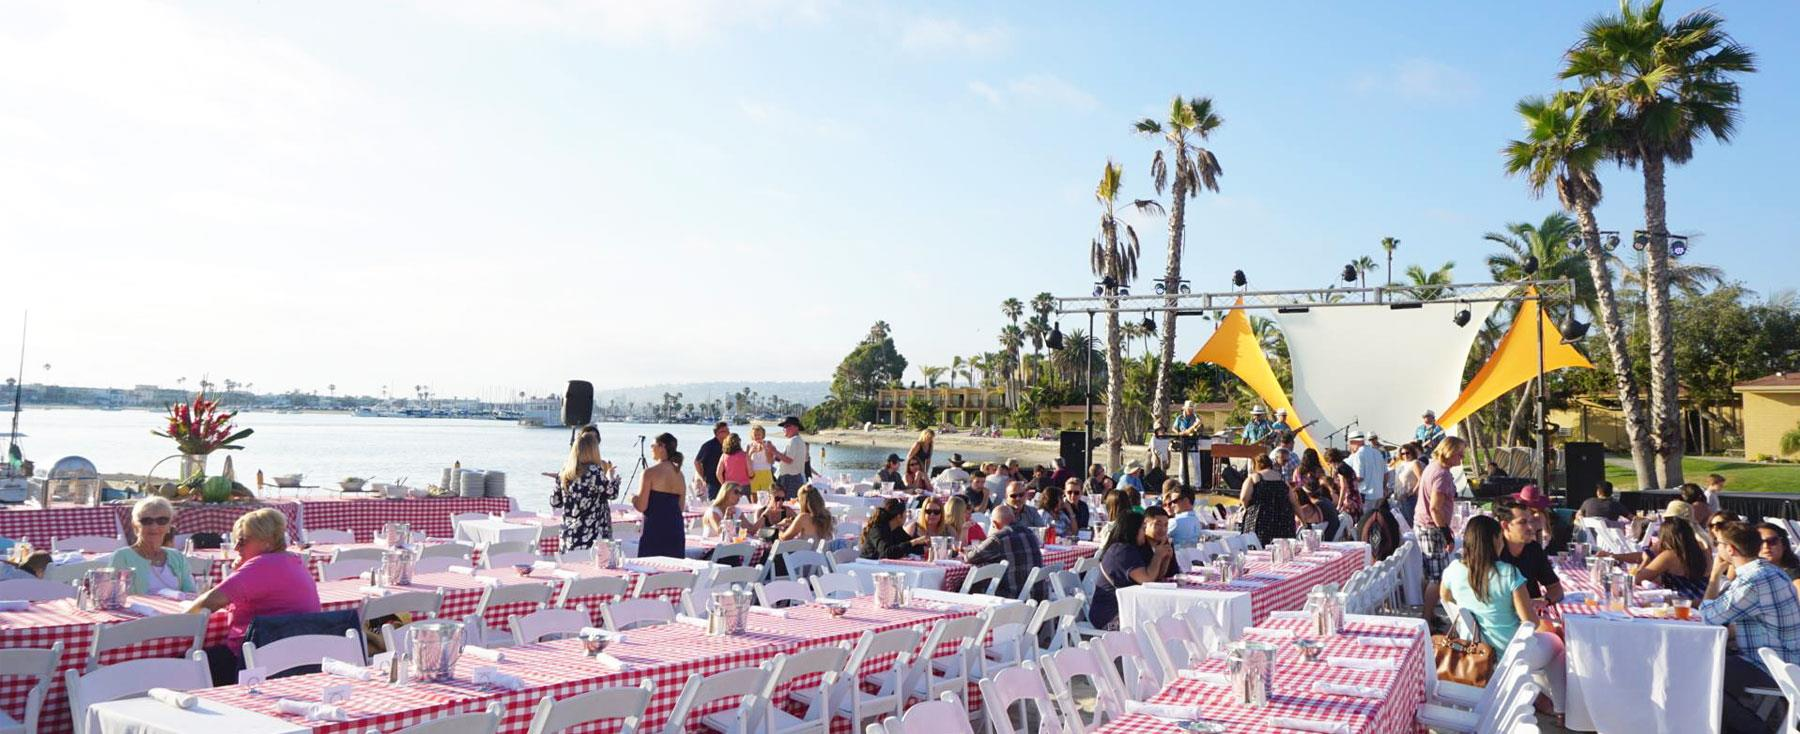 California Dreaming - Top Things to Do